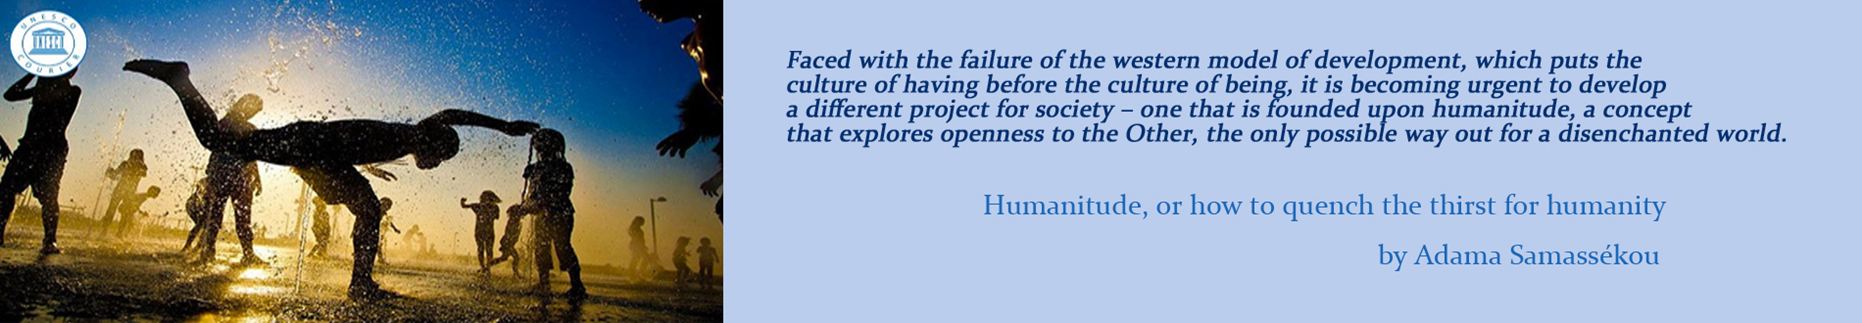 Humanitude, or how to quench the thirst for humanity http://www.cipsh.net/web/news-184.htm